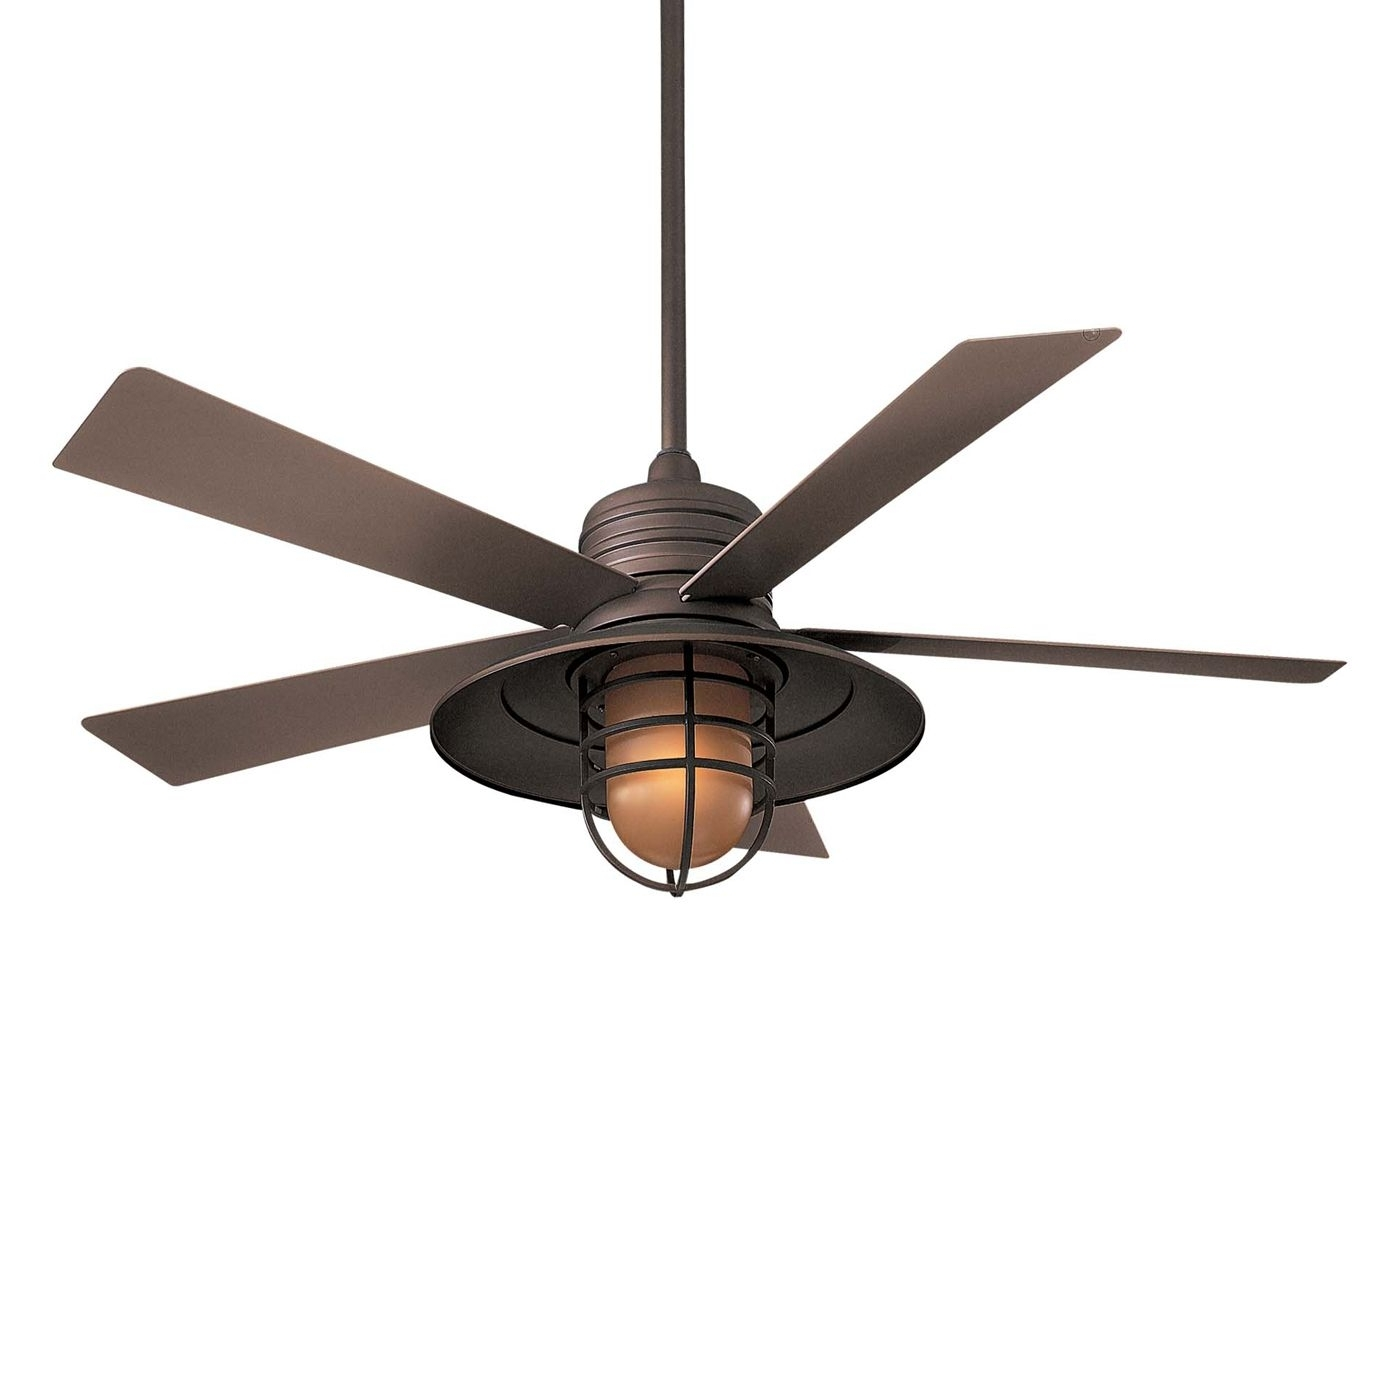 Minka Aire Outdoor Ceiling Fans With Lights Within Newest Minka Aire F582 54 In Rainman™ Indoor/outdoor Ceiling Fan At Atg (Gallery 9 of 20)